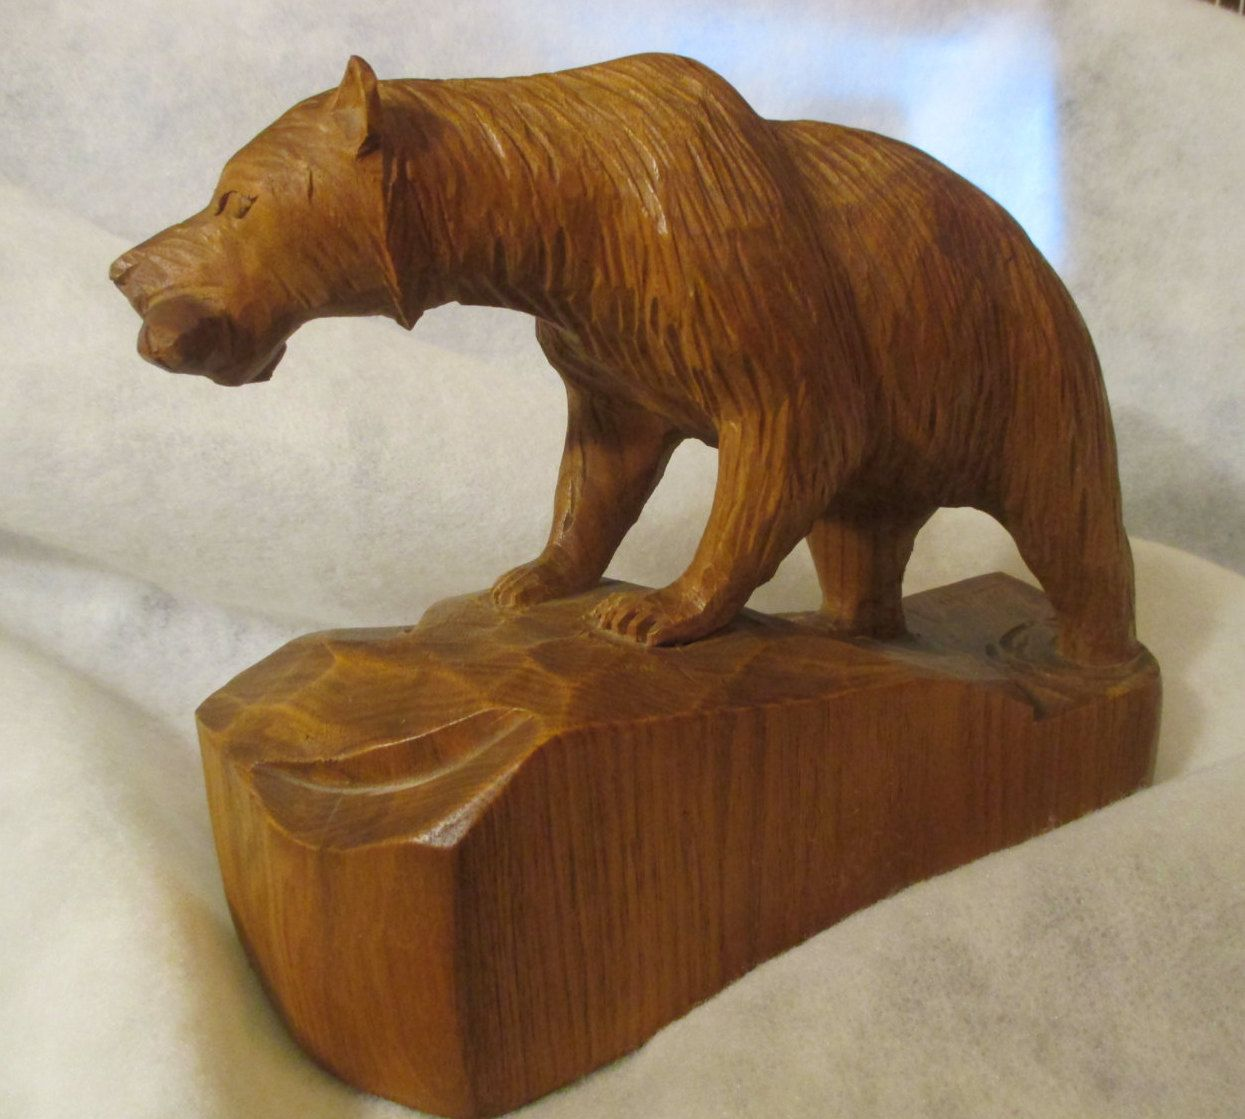 Wooden bear carving by clement dube sculptor wood carver from